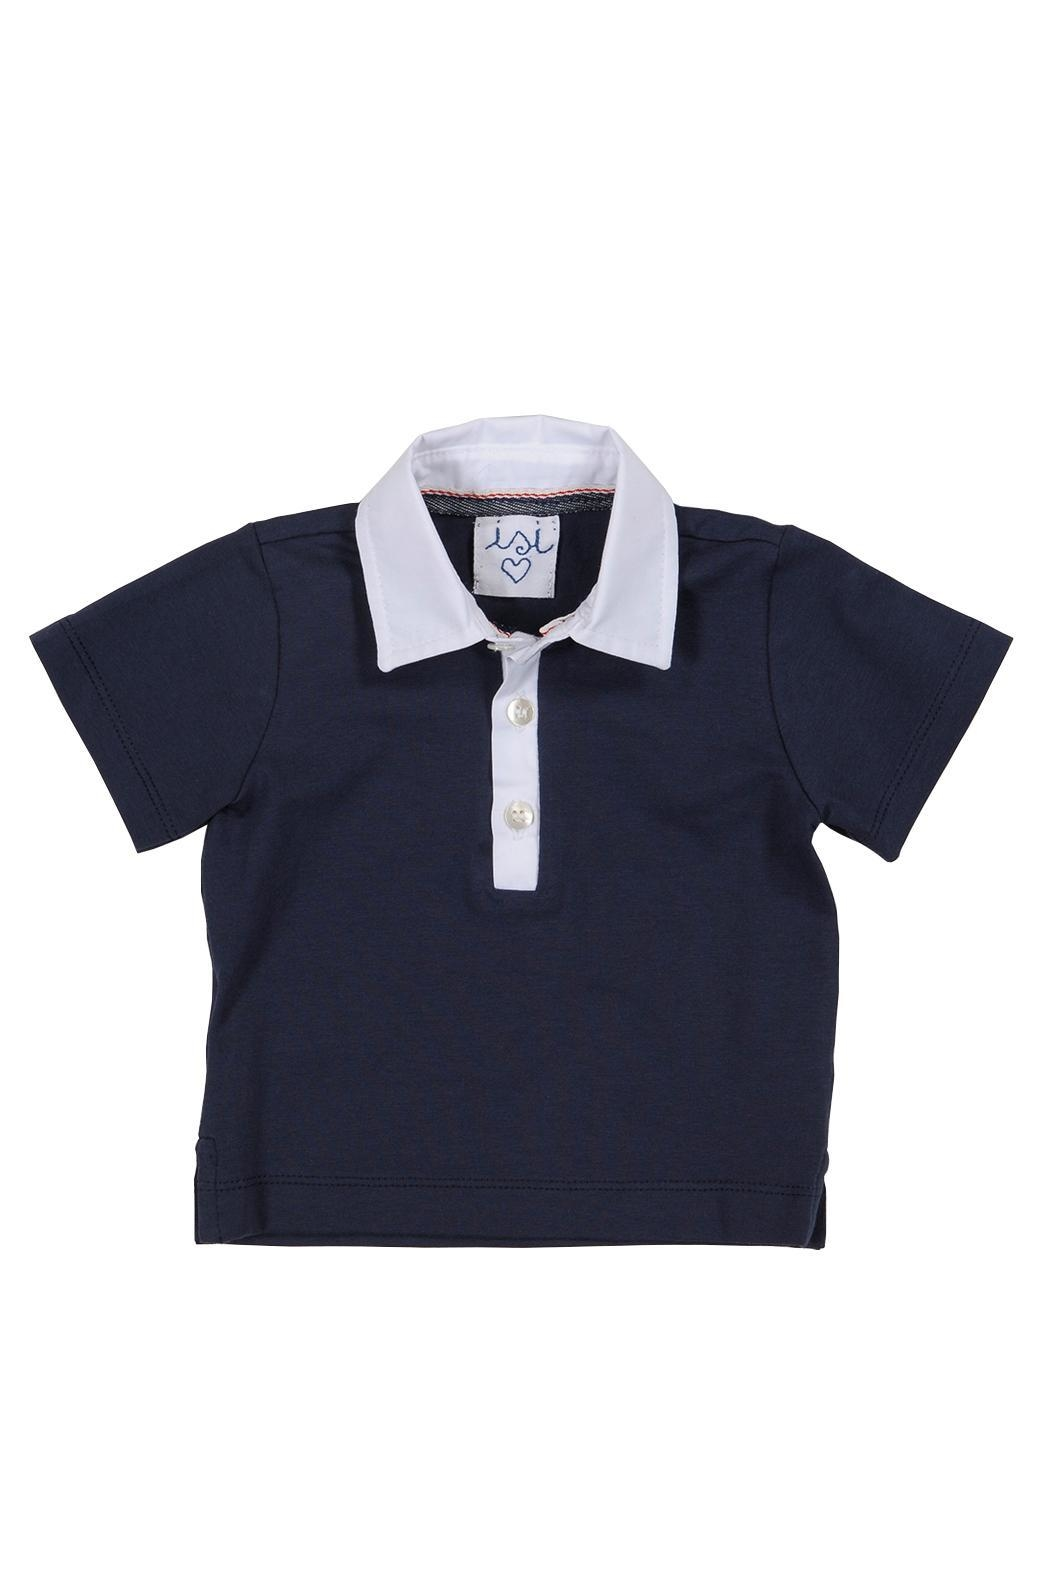 Malvi & Co. Navy Polo Tee. - Front Cropped Image